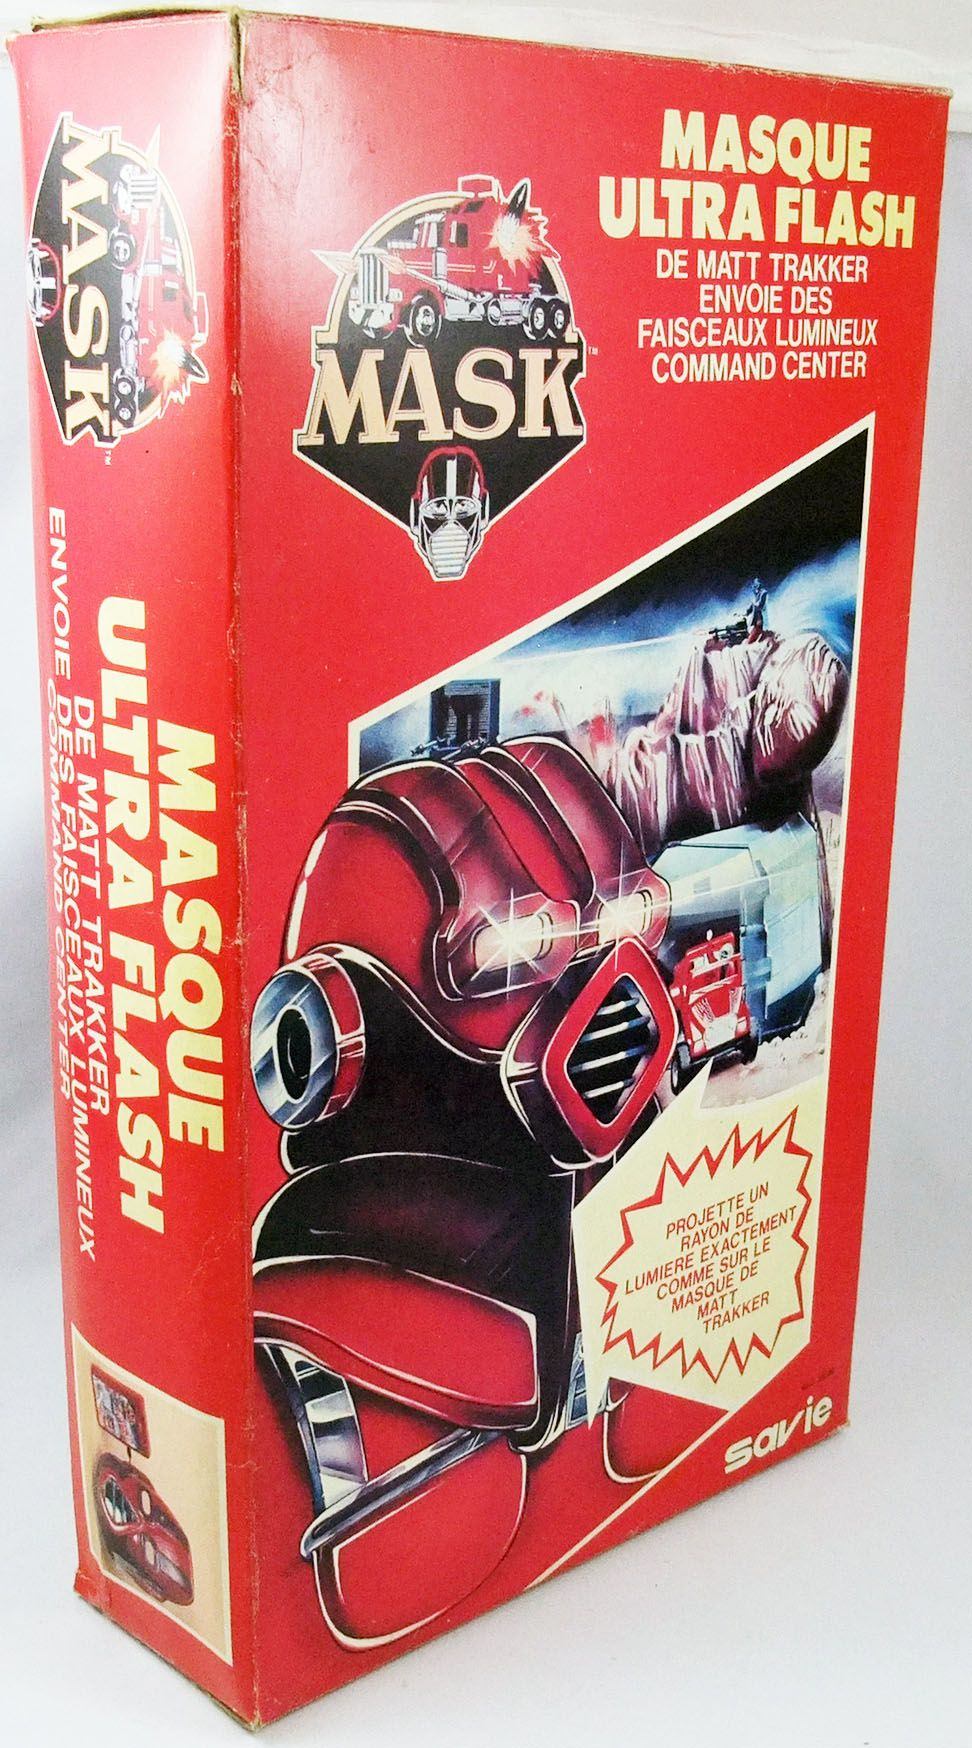 M.A.S.K. - Ultra Flash Mask - Savie (mint in box)